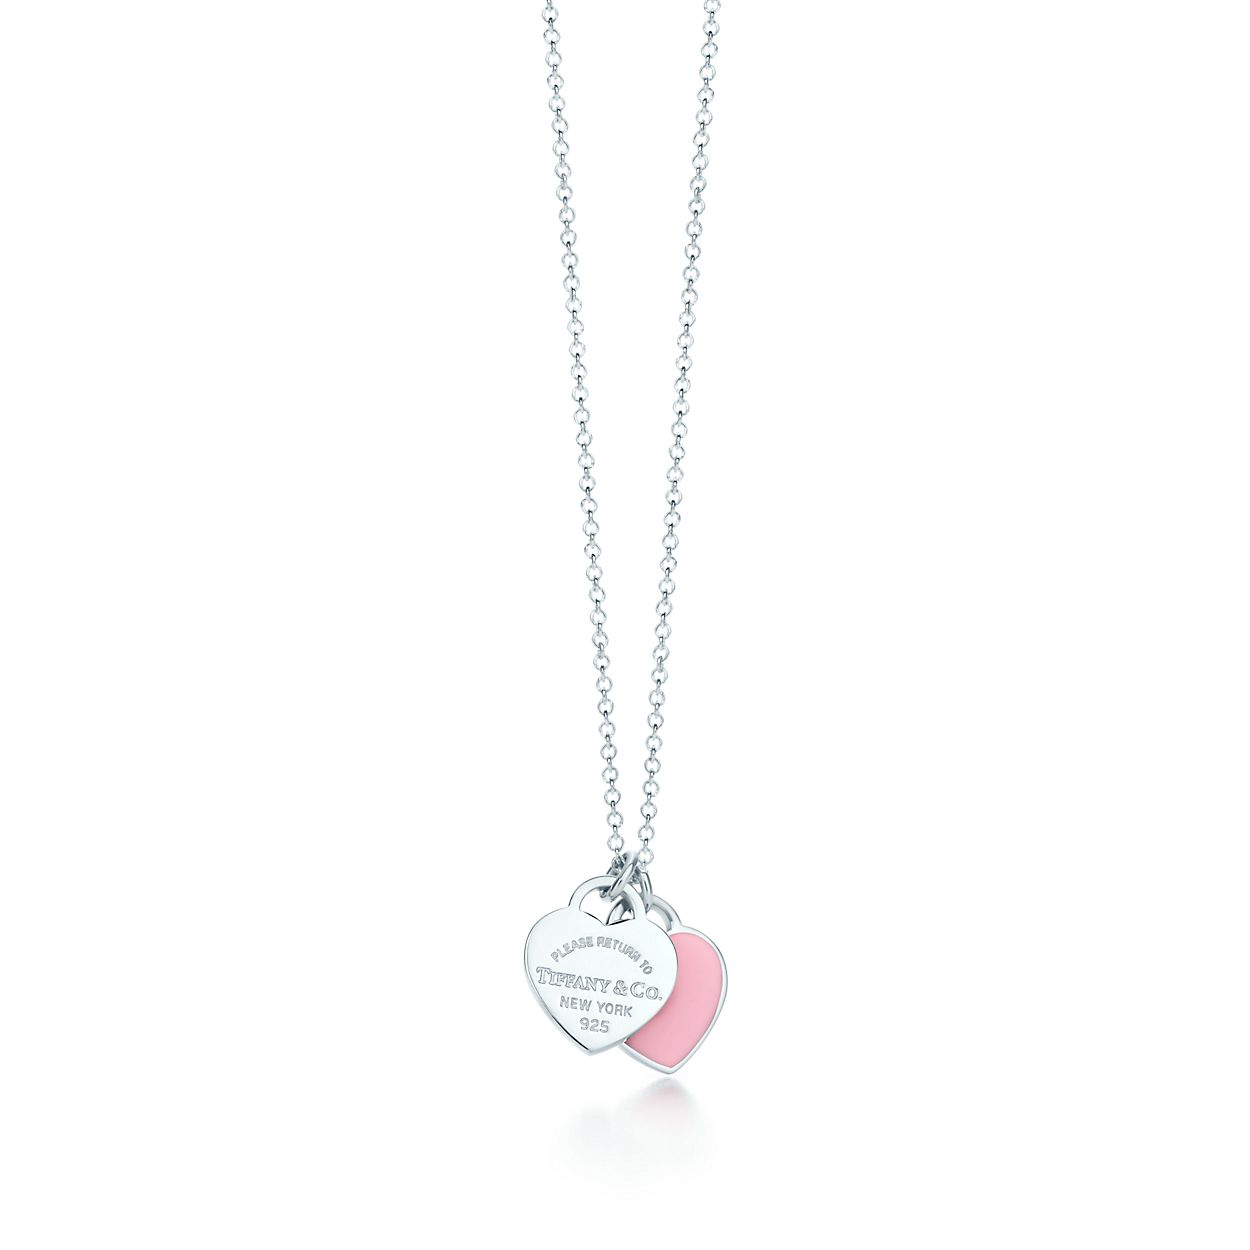 Return to tiffany mini double heart tag pendant in silver with pink return to tiffanymini double heart tagbrpendant aloadofball